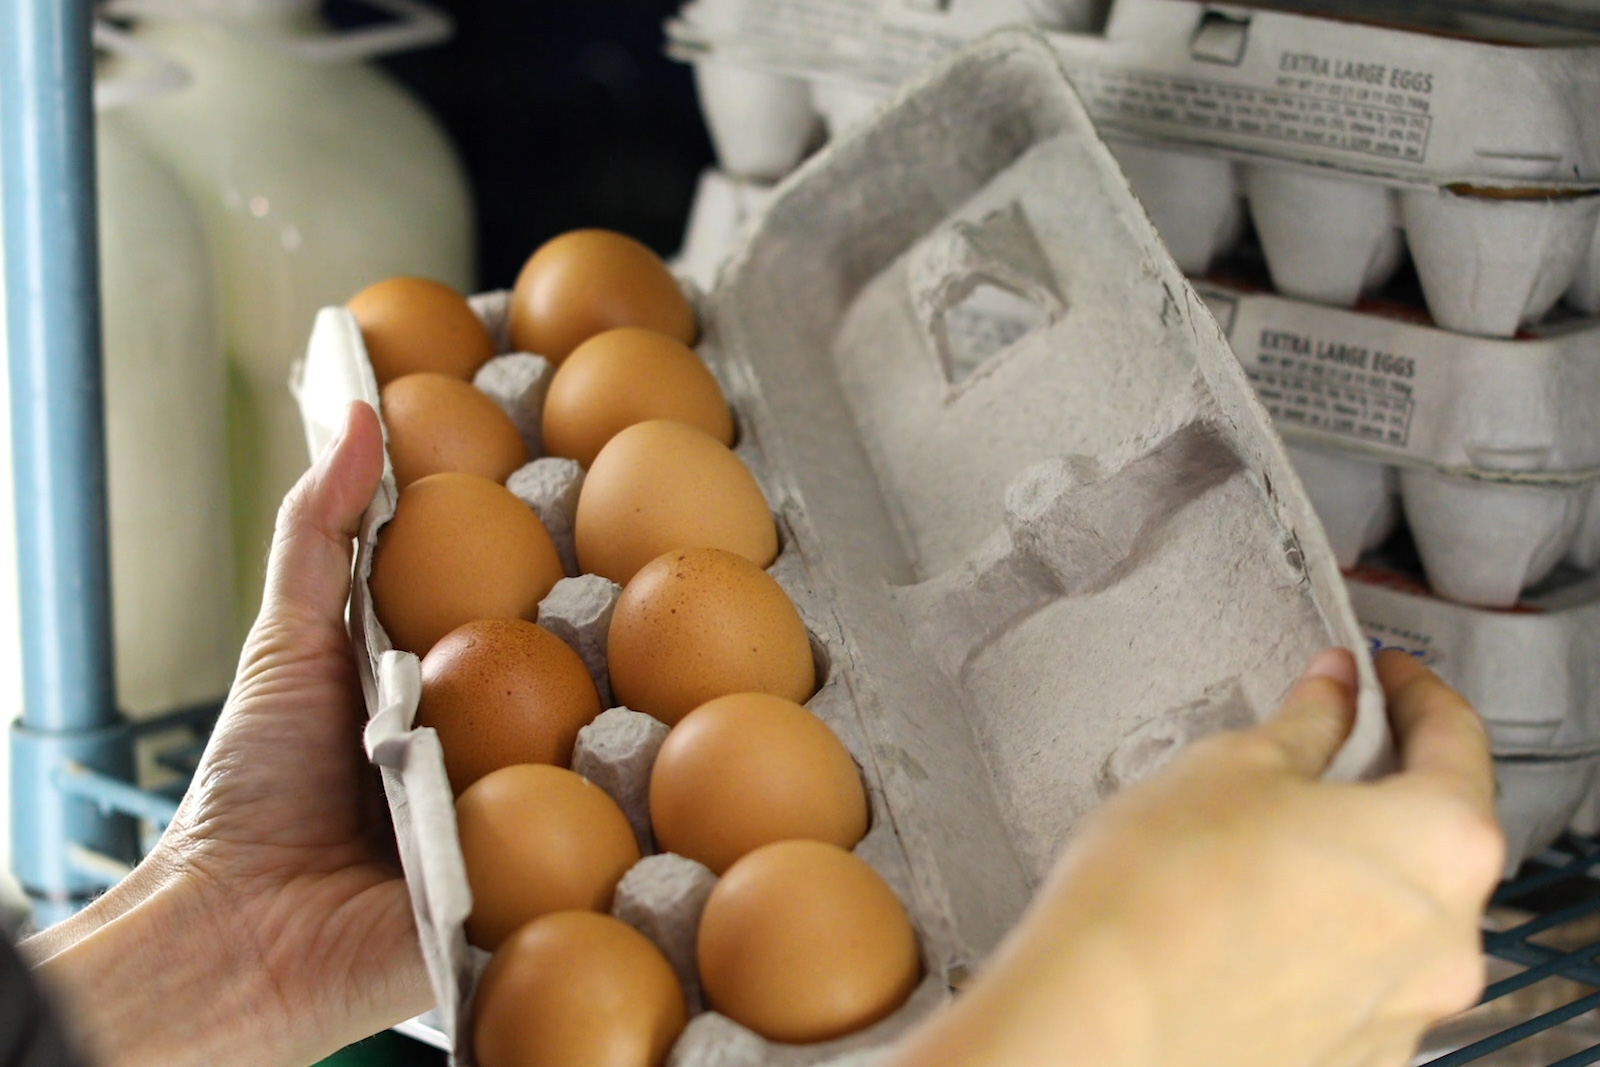 A customer checks their eggs